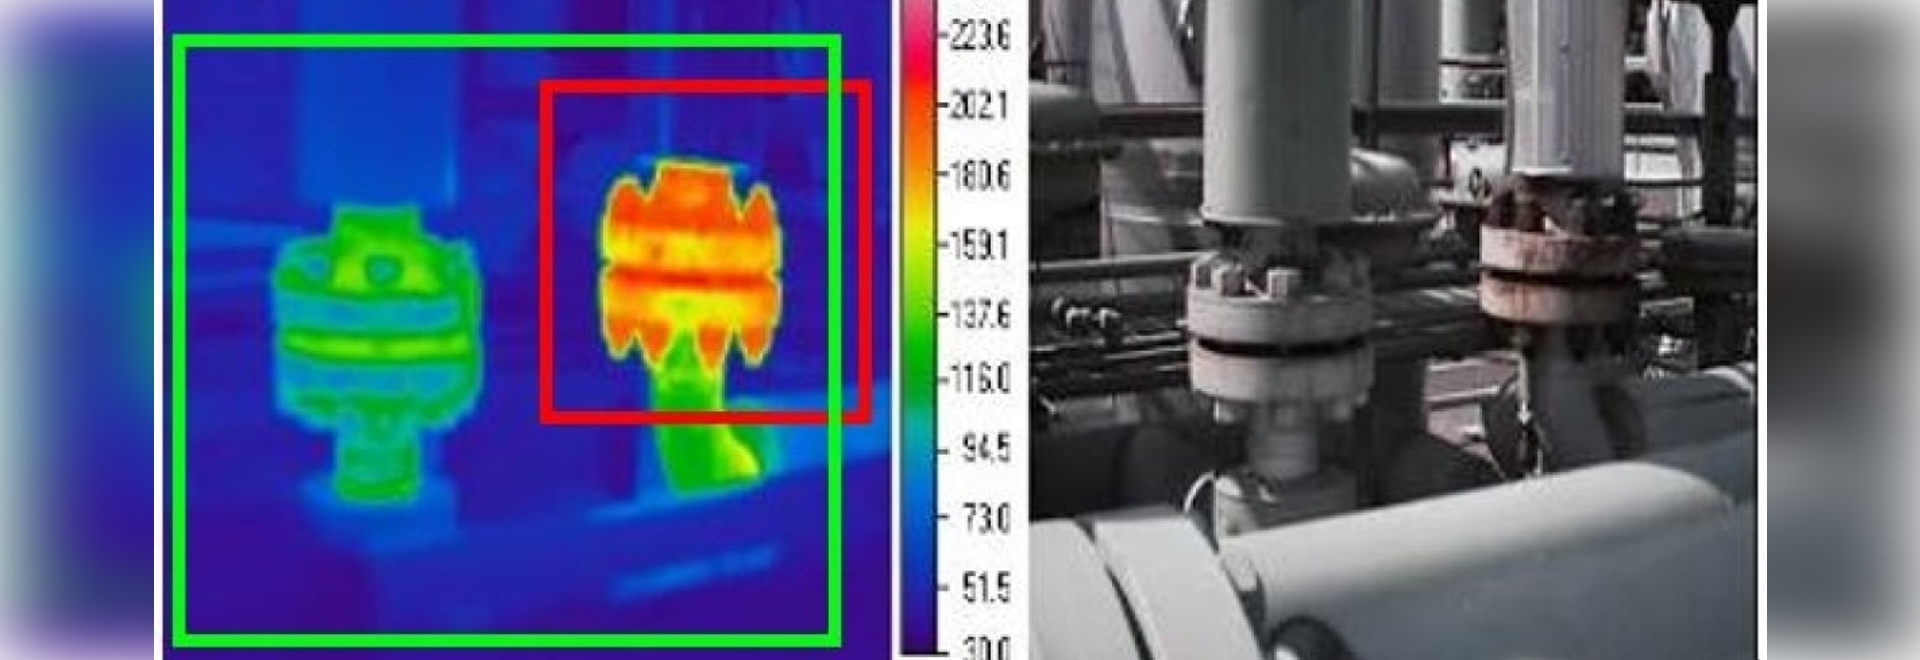 Gobi+, A Real Thermographic Sensor System